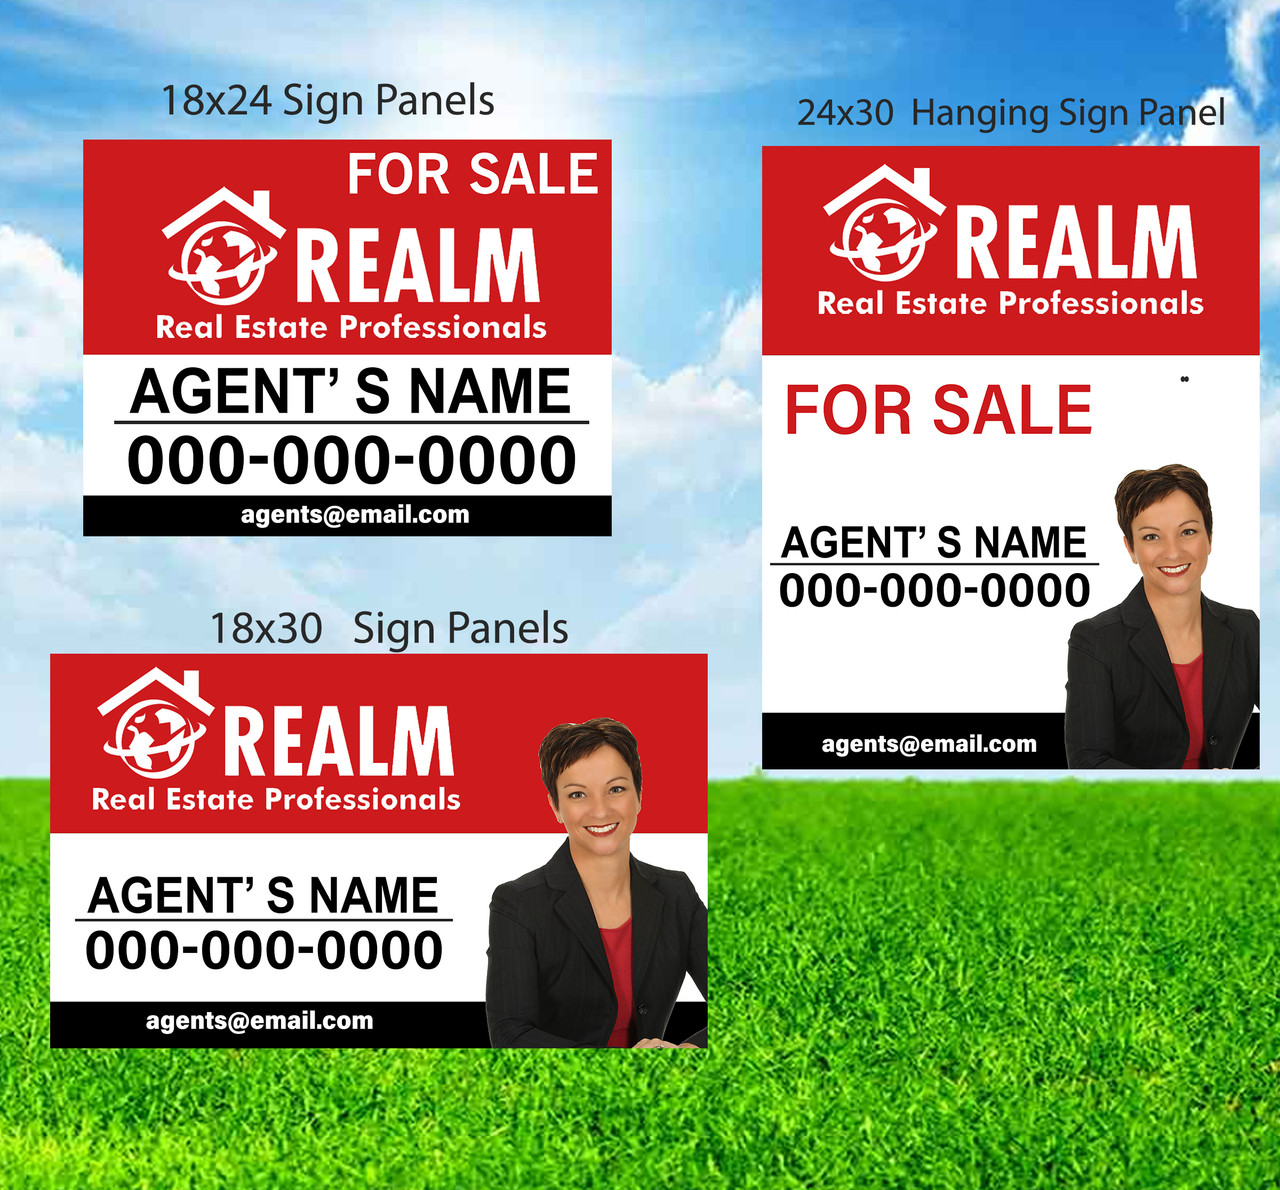 Realm signs Panels